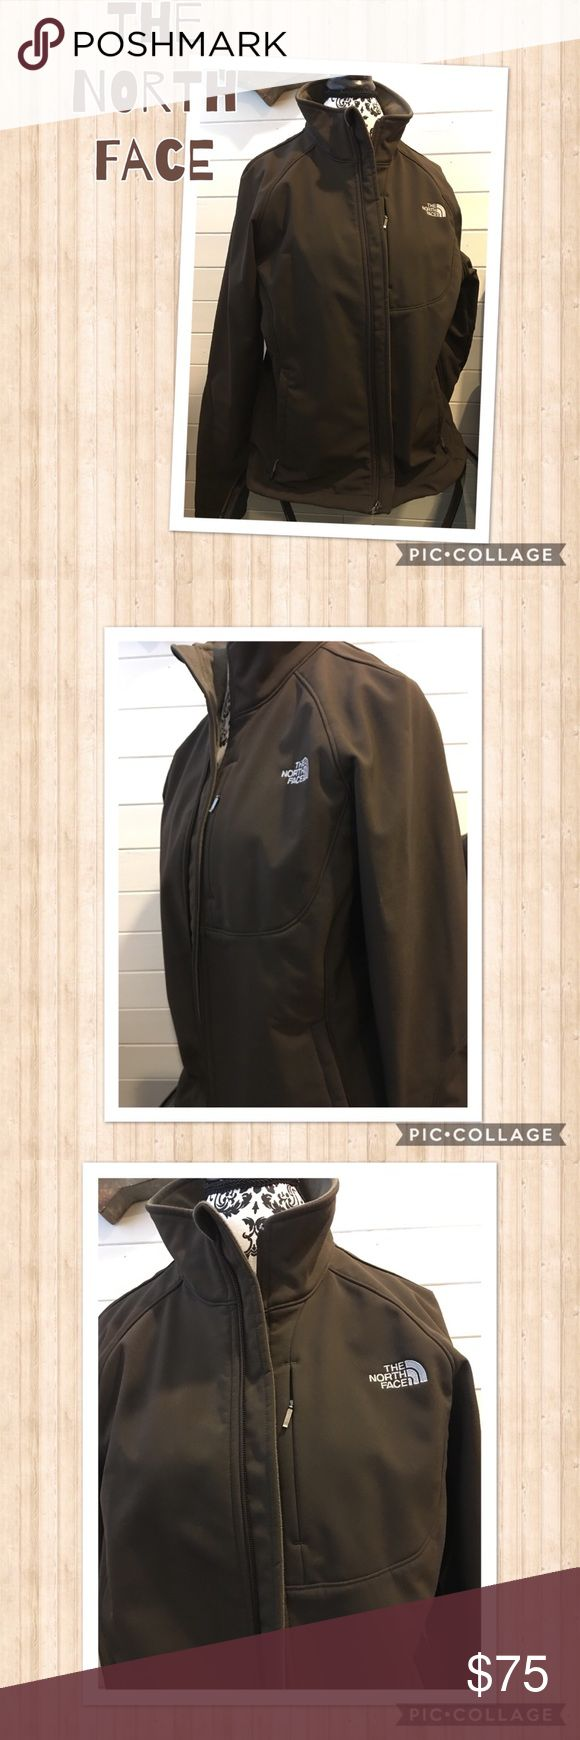 The North Face Apex Bionic 2 Jacket Gently used a few times! Looks like brand new! Windproof stretch soft-shell jacket for cool-weather activities Active fit Center zip Invisible-zip chest pocket Curved cuff with inner stretch cuff for added comfort and protection Hem cinch-cord Raised logos Pet and smoke free home North Face Jackets & Coats